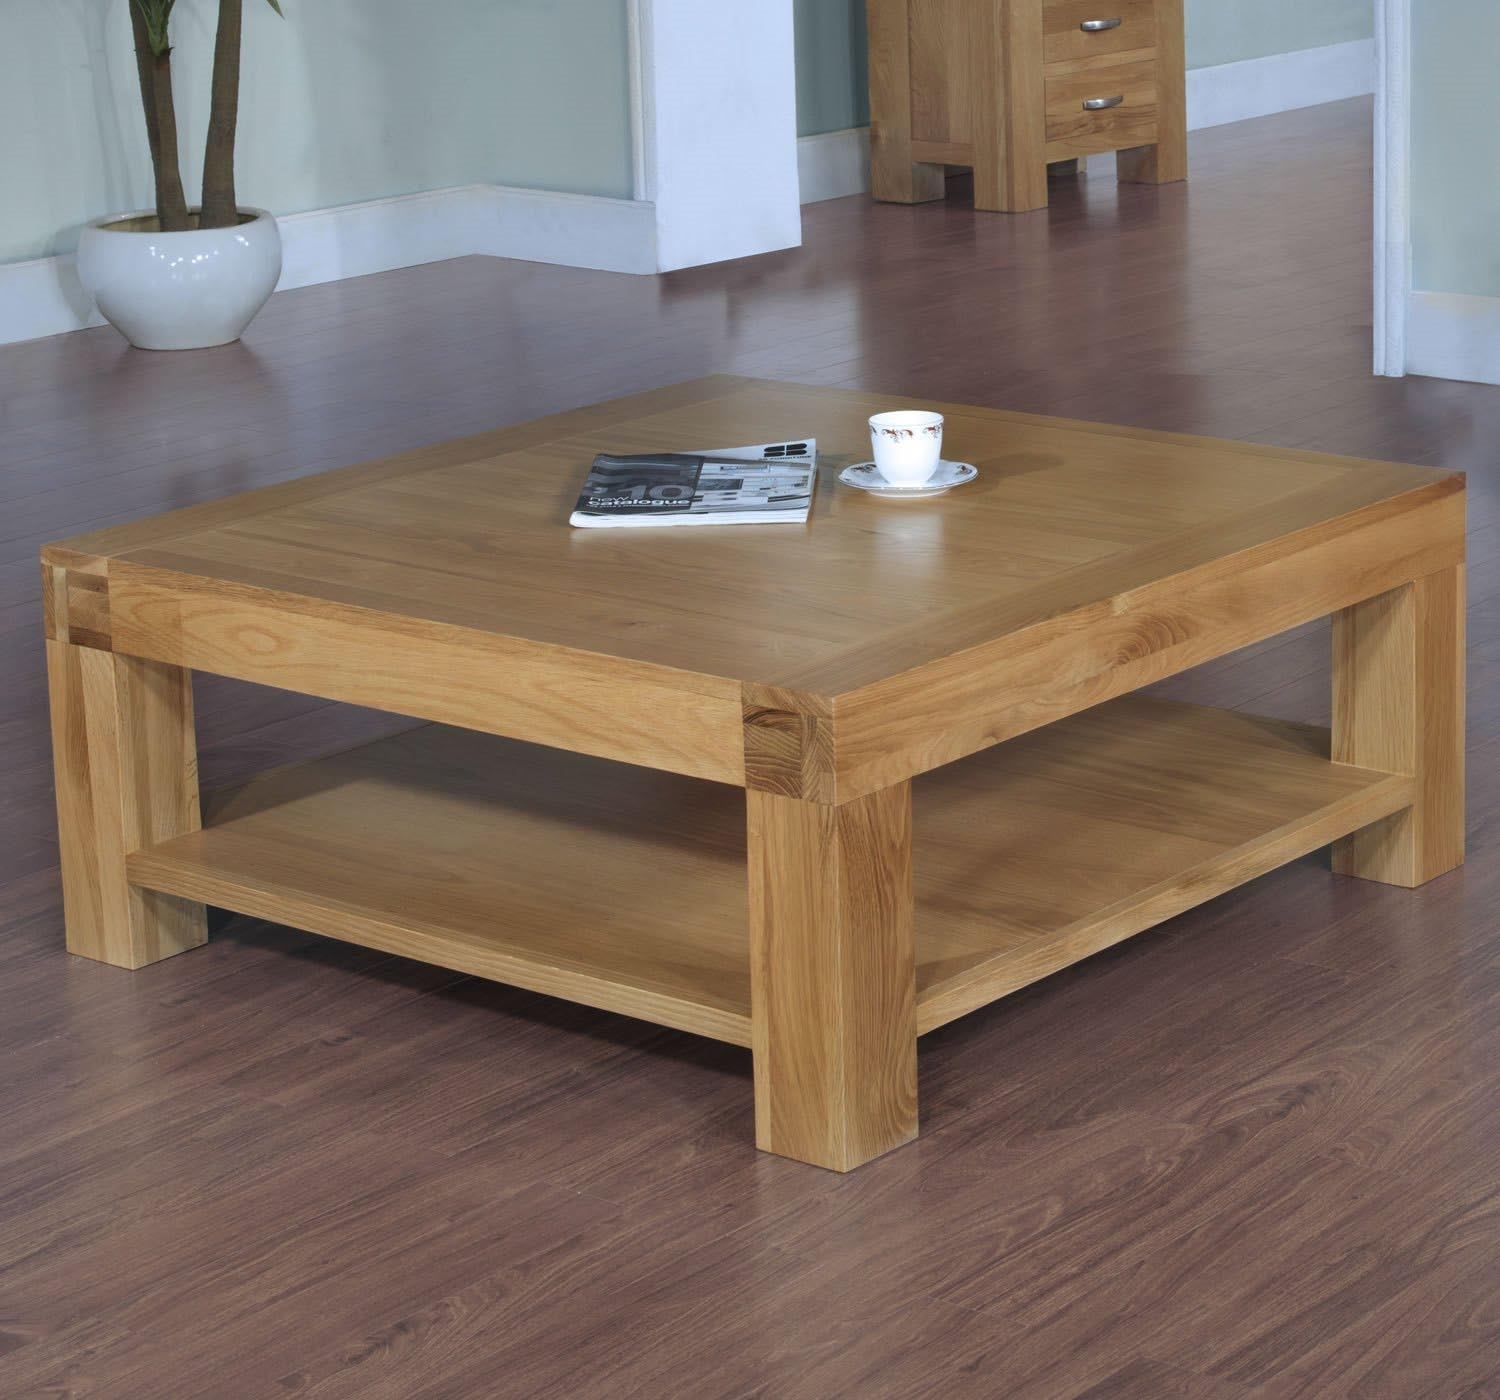 Image of: Two Small Tables Instead Of Coffee Table